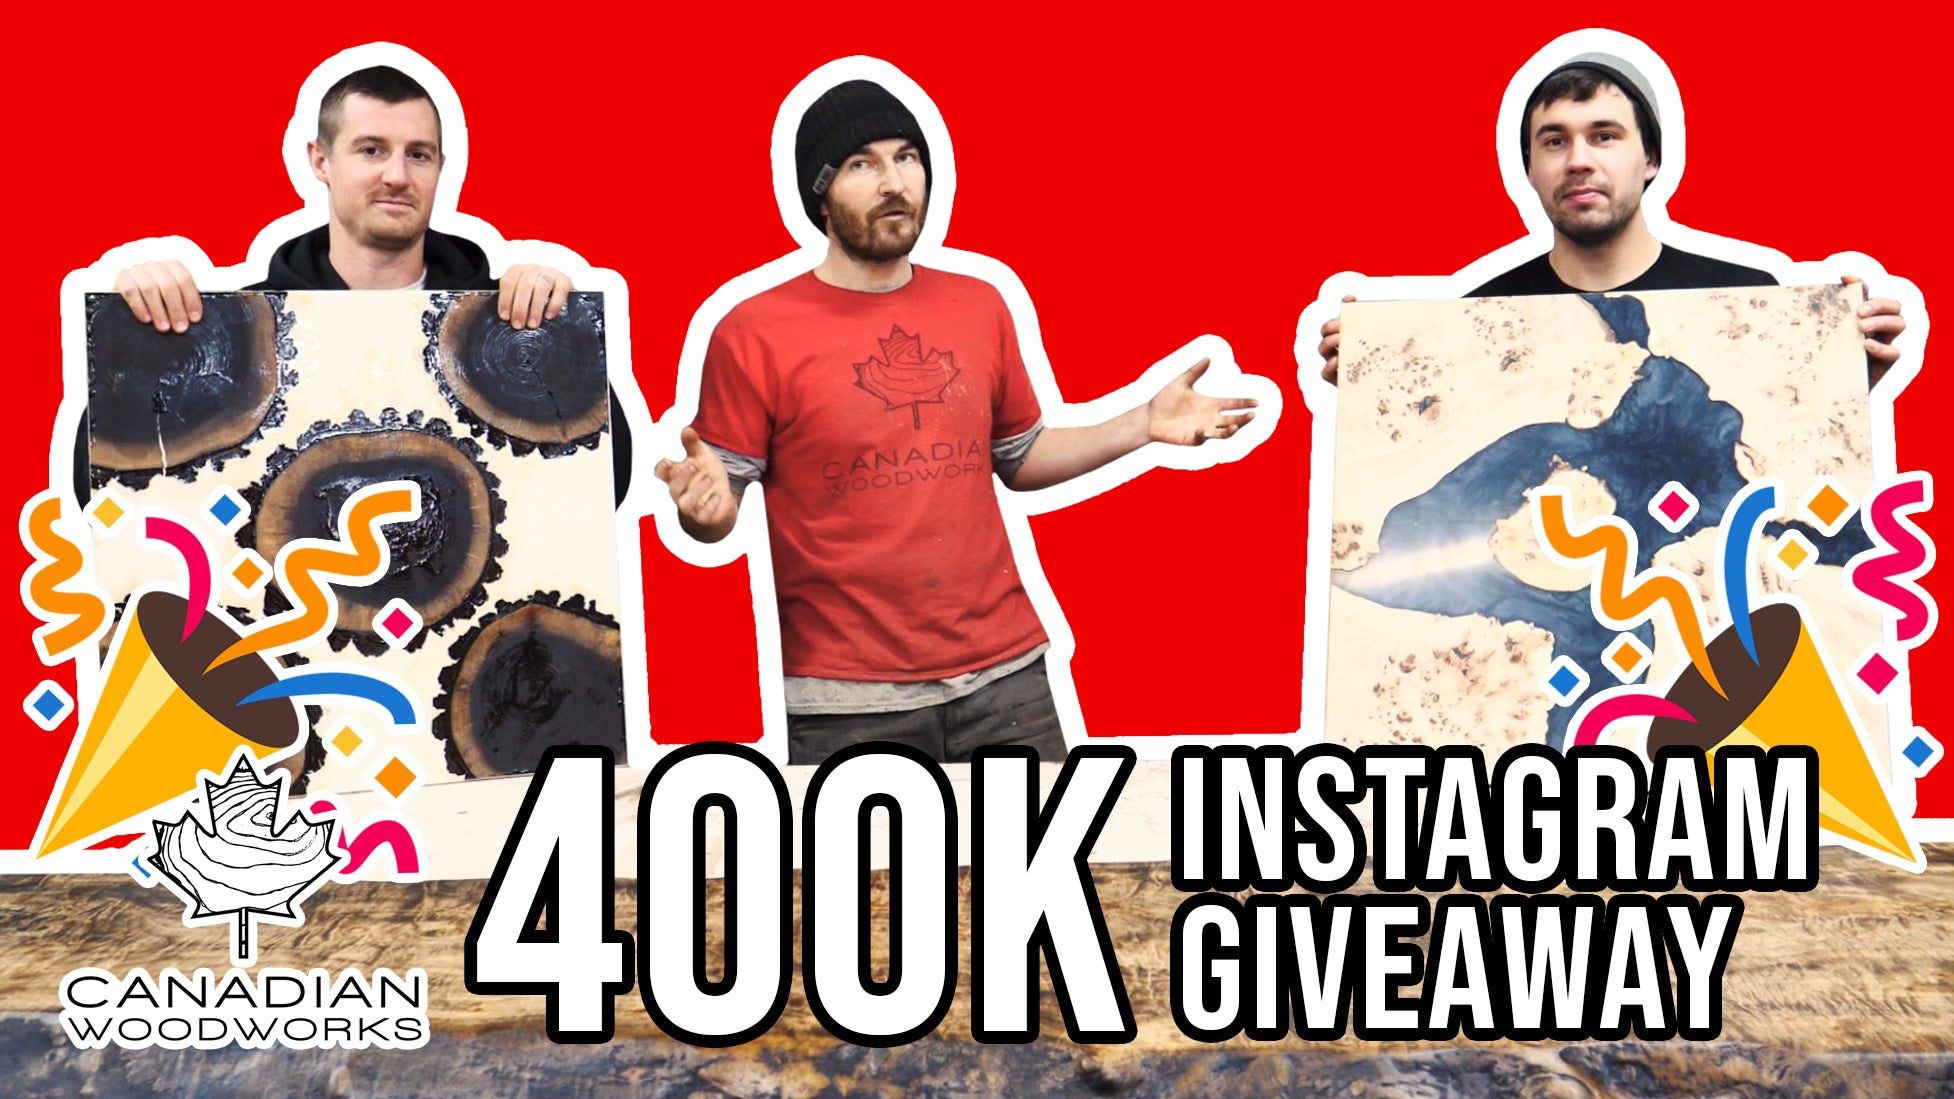 400K Followers on Instagram GIVEAWAY CONTEST!